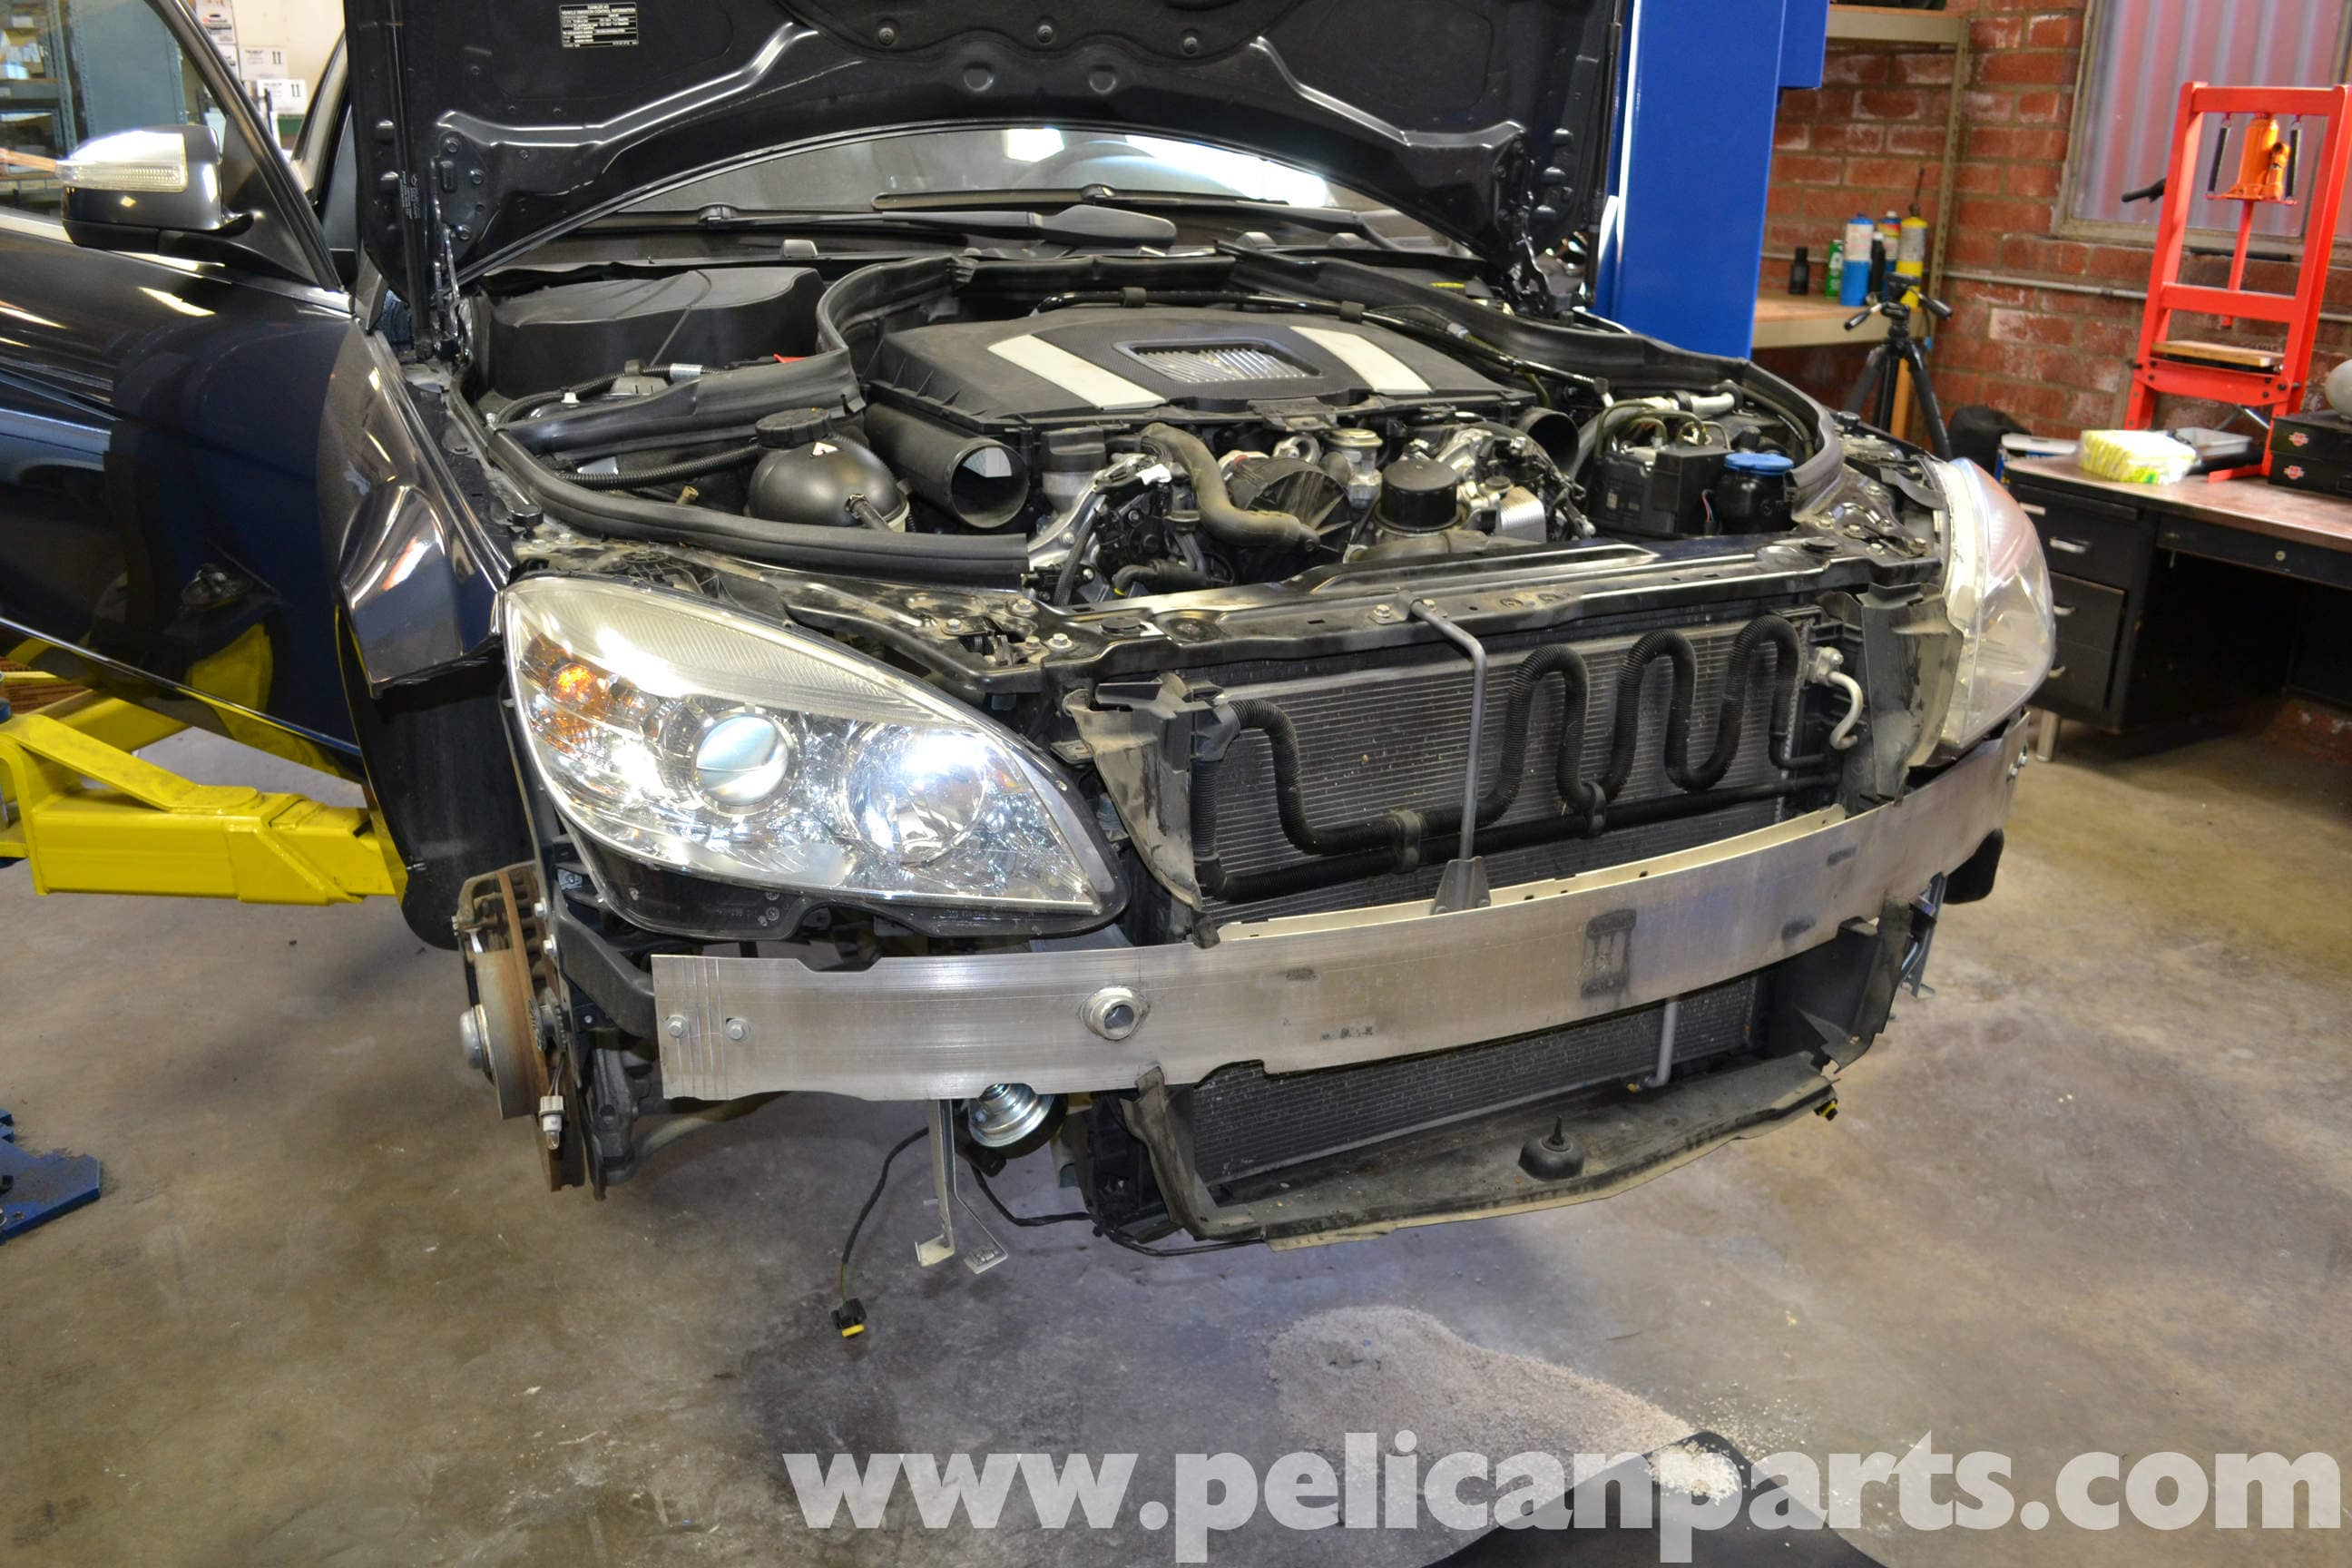 Mercedes-Benz W204 Headlight Bulb and Assembly Replacement